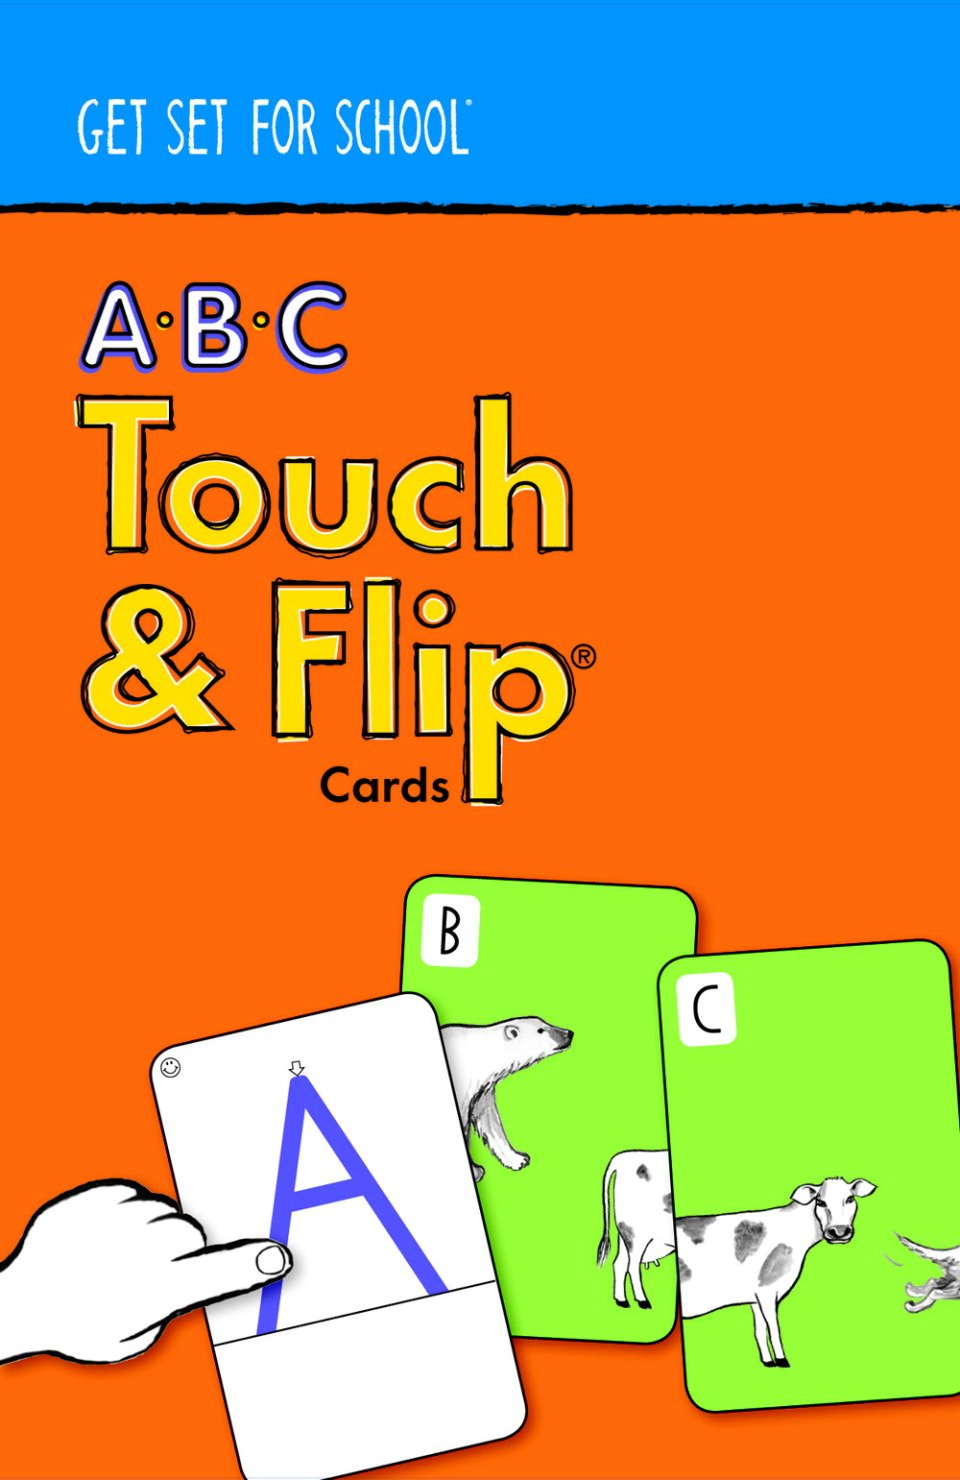 Get Set for School ABC Touch and Flip Cards byHandwriting Without Tears